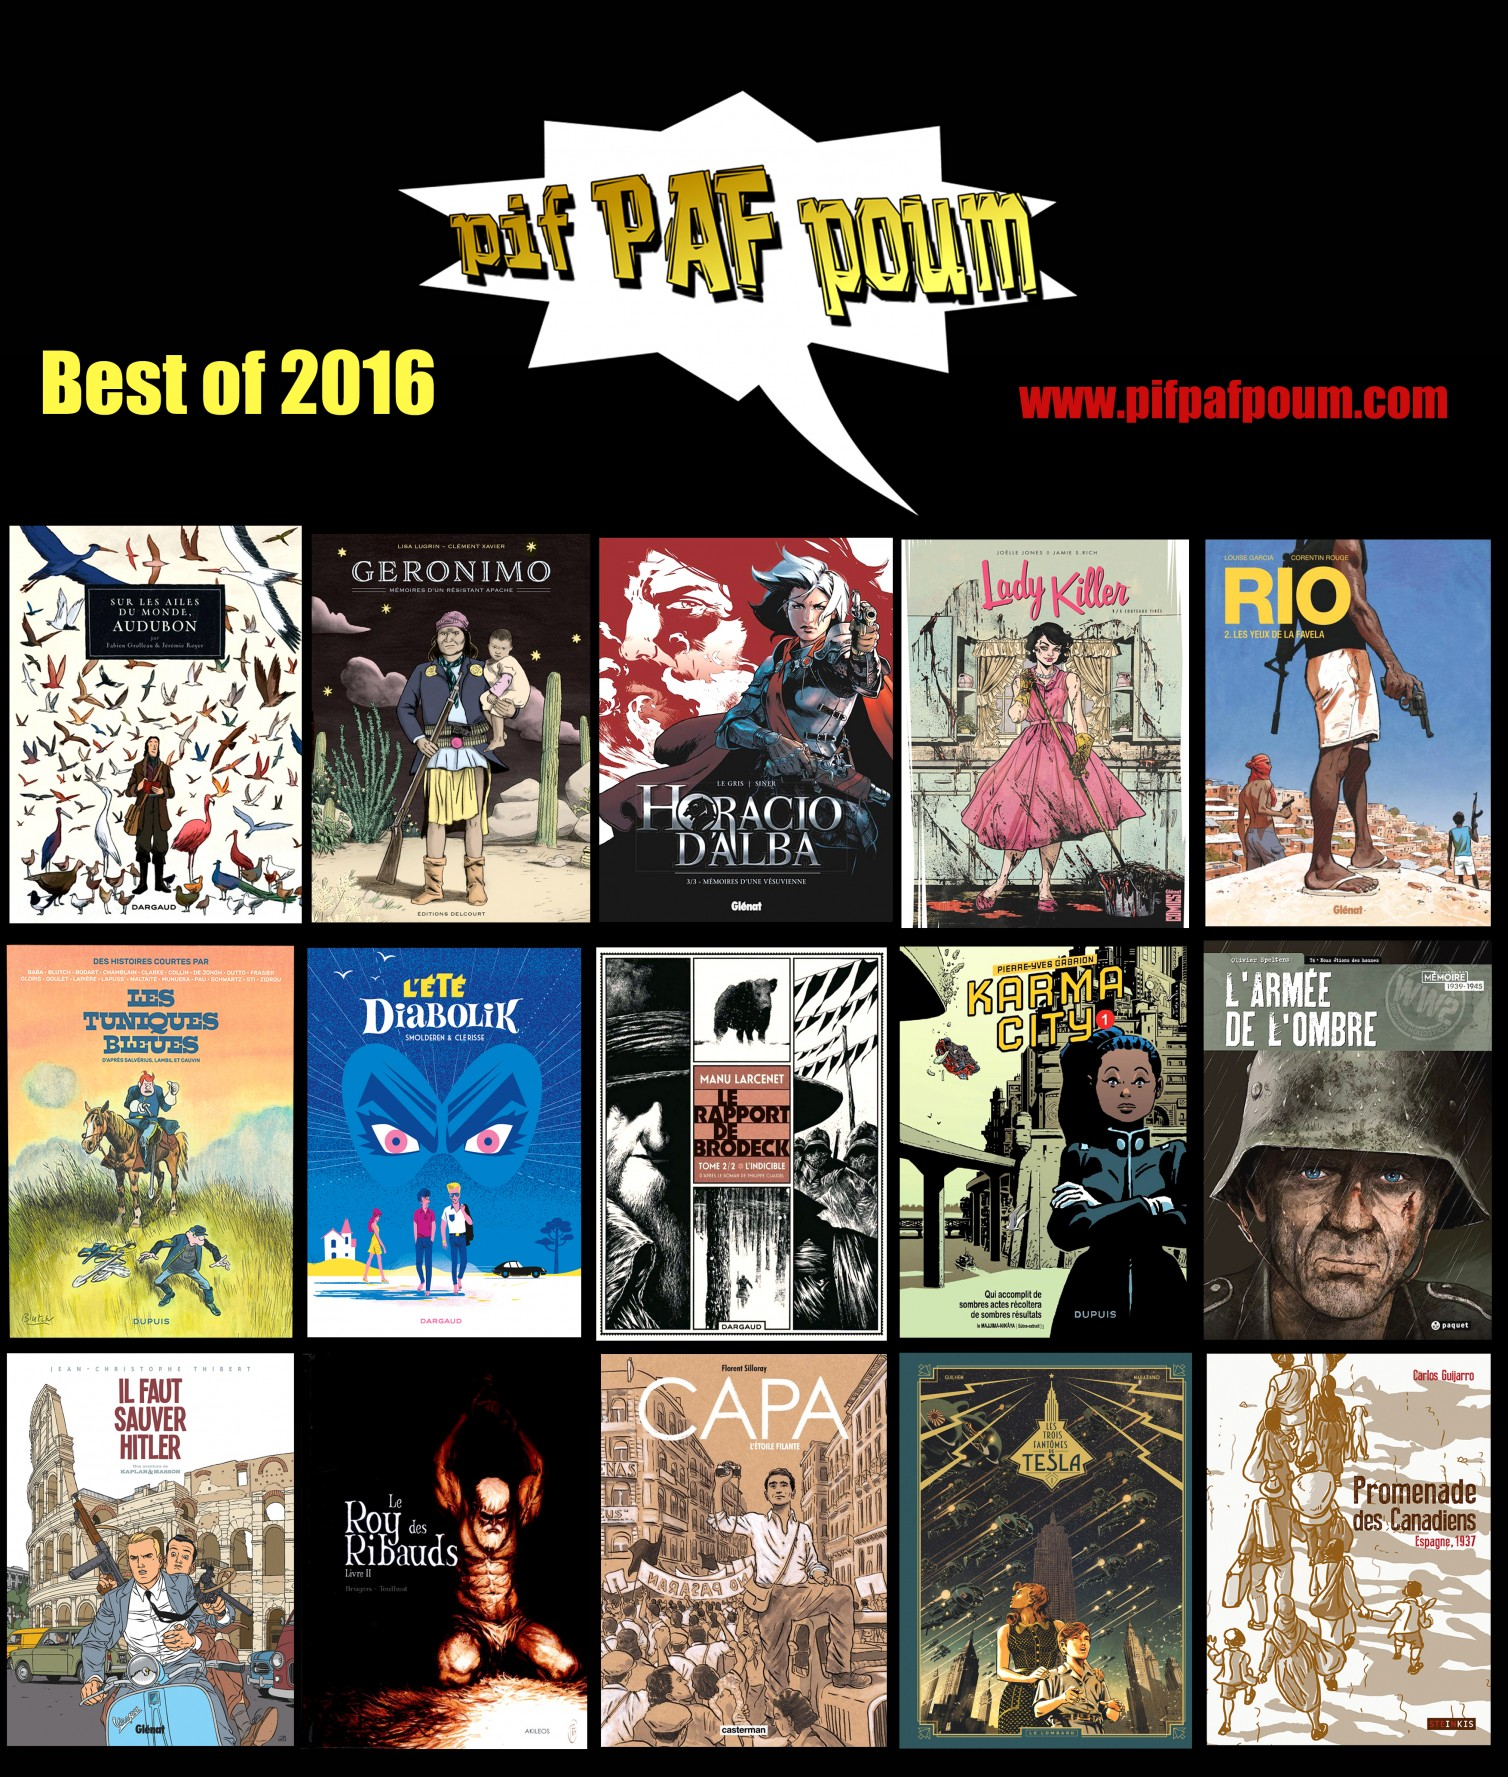 ppp best of 2016 def